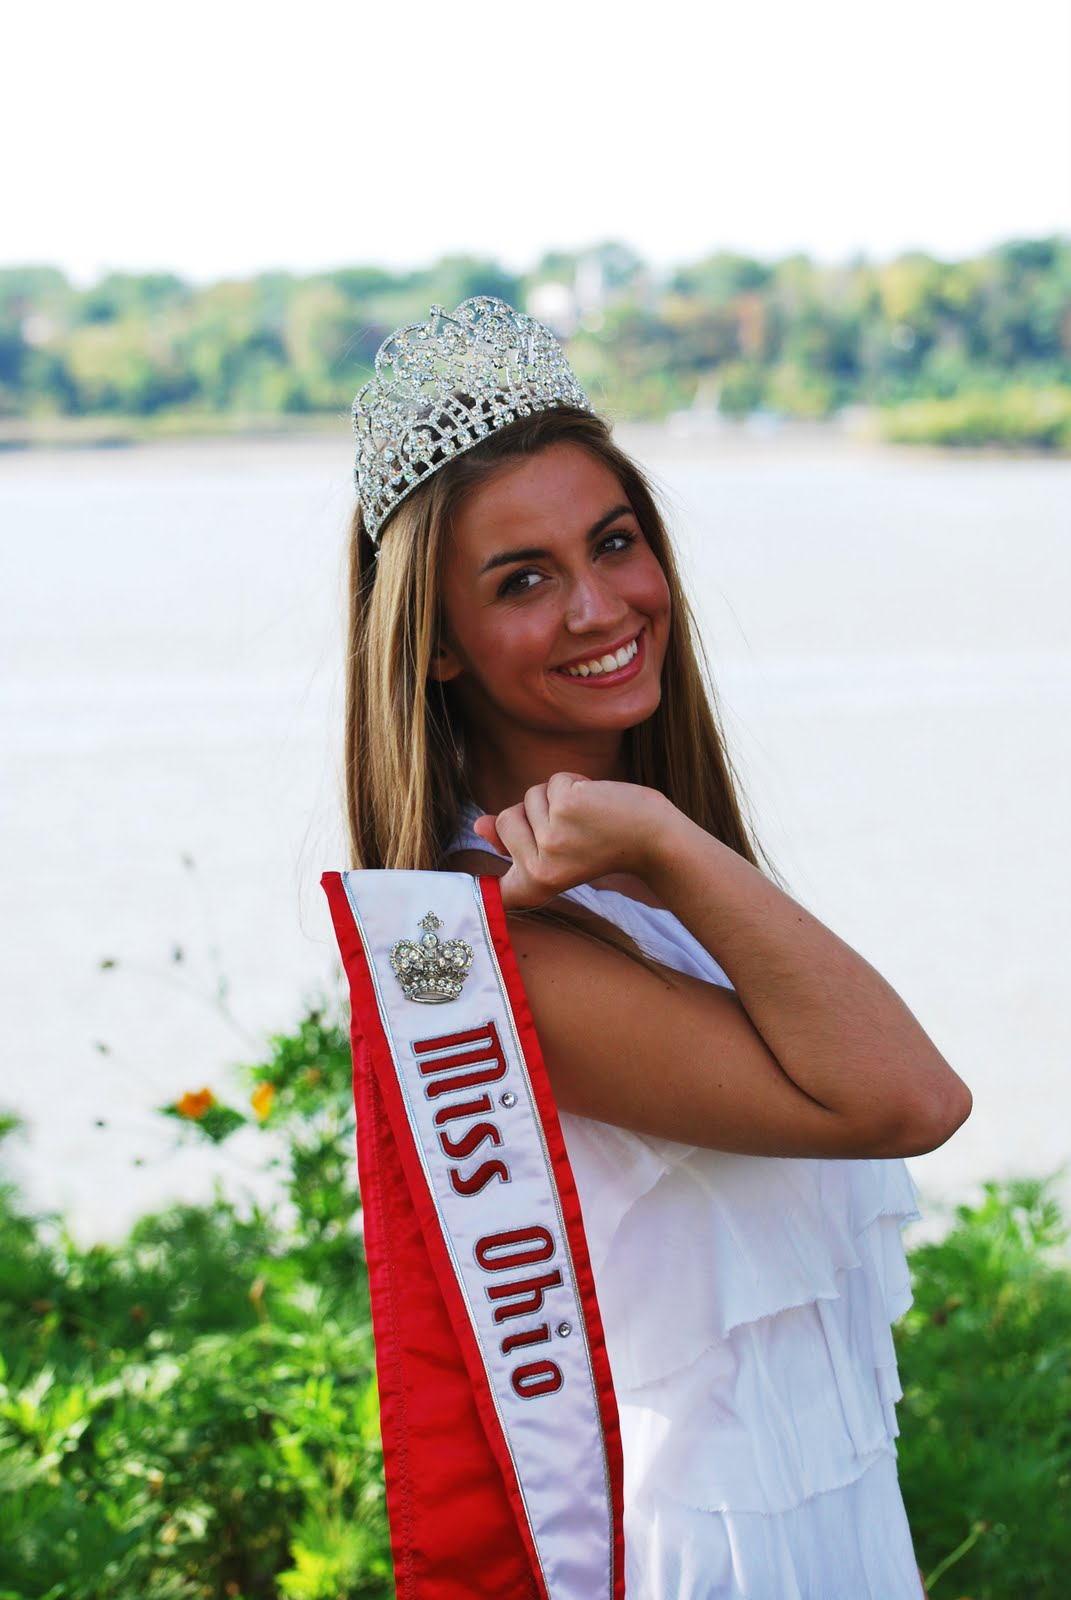 Sylvania woman crowned Miss Ohio - The Blade